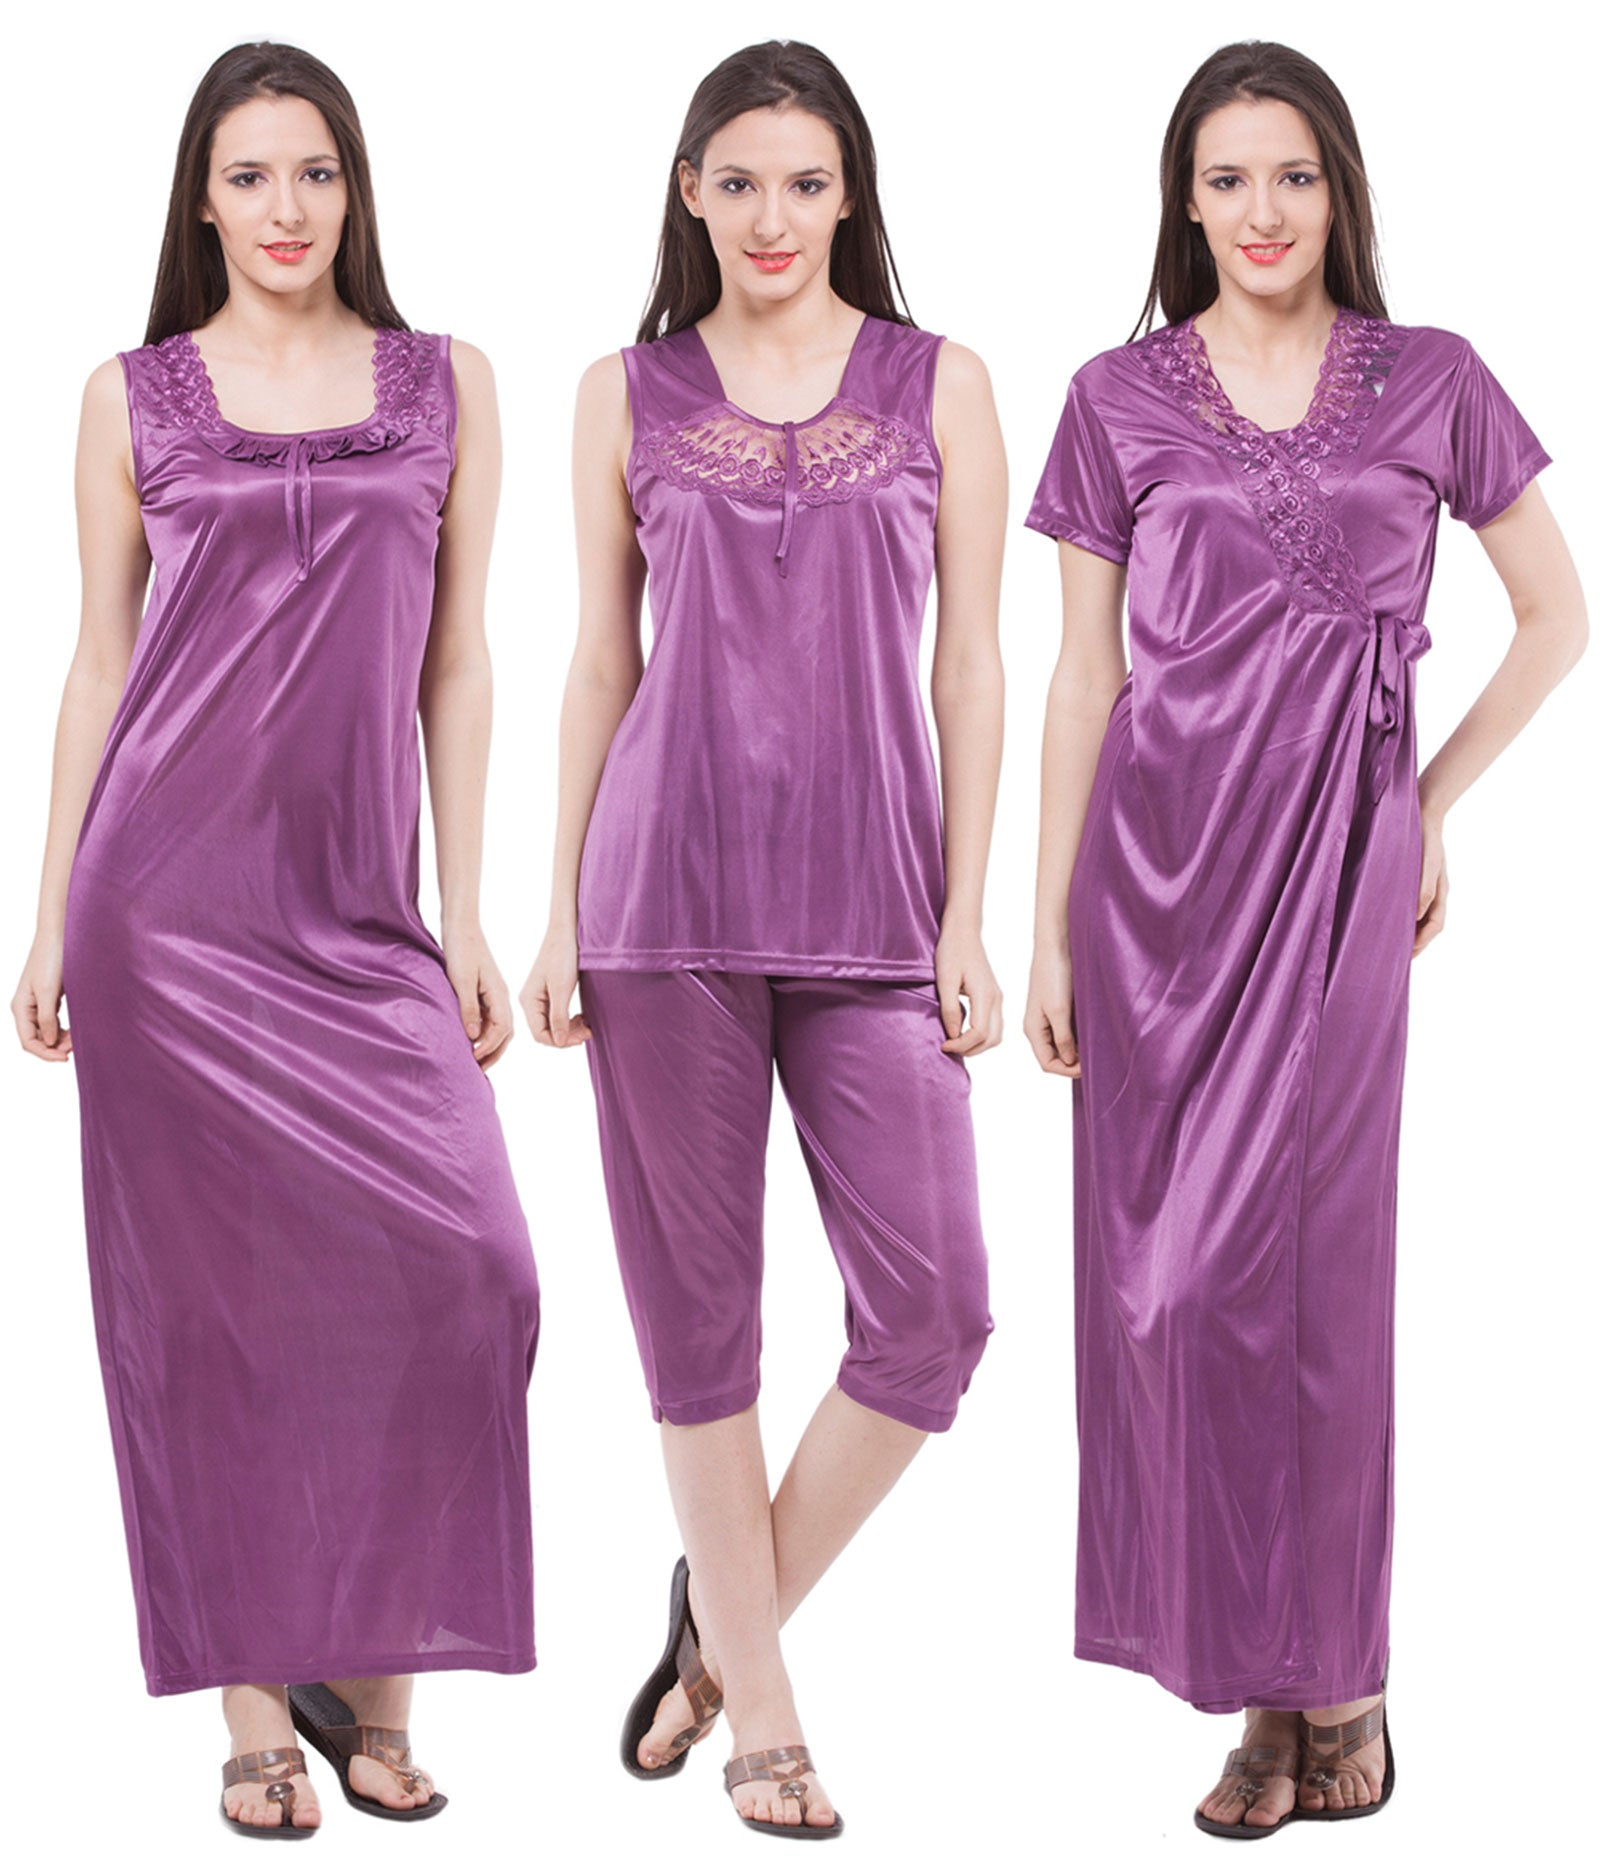 Fasense Satin 4 PCs Set Of Long Nighty, Wrap Gown Top & Capry DP117 - fasensestore